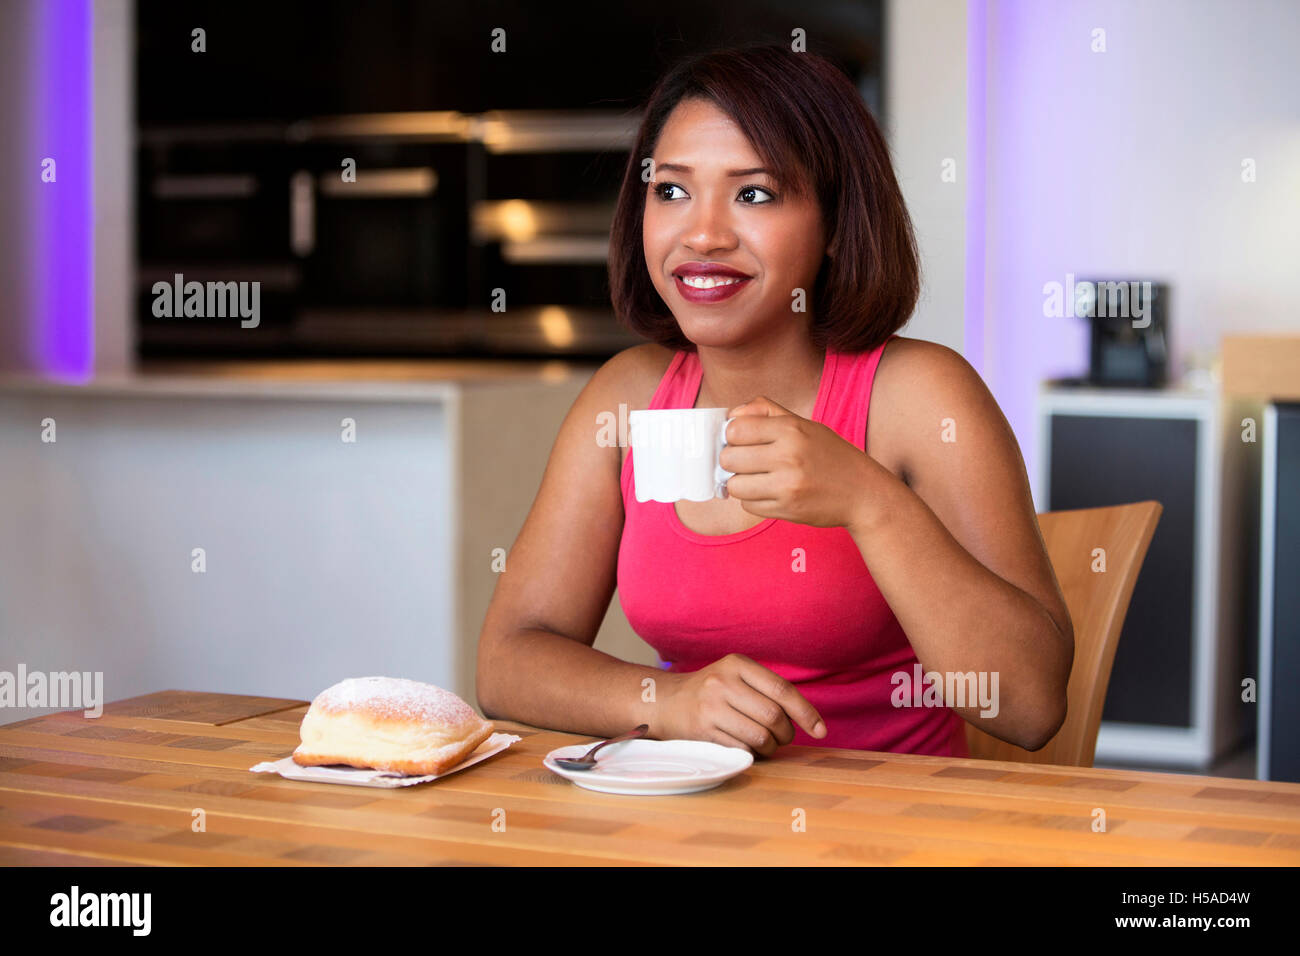 latina housewife stock photos & latina housewife stock images - alamy